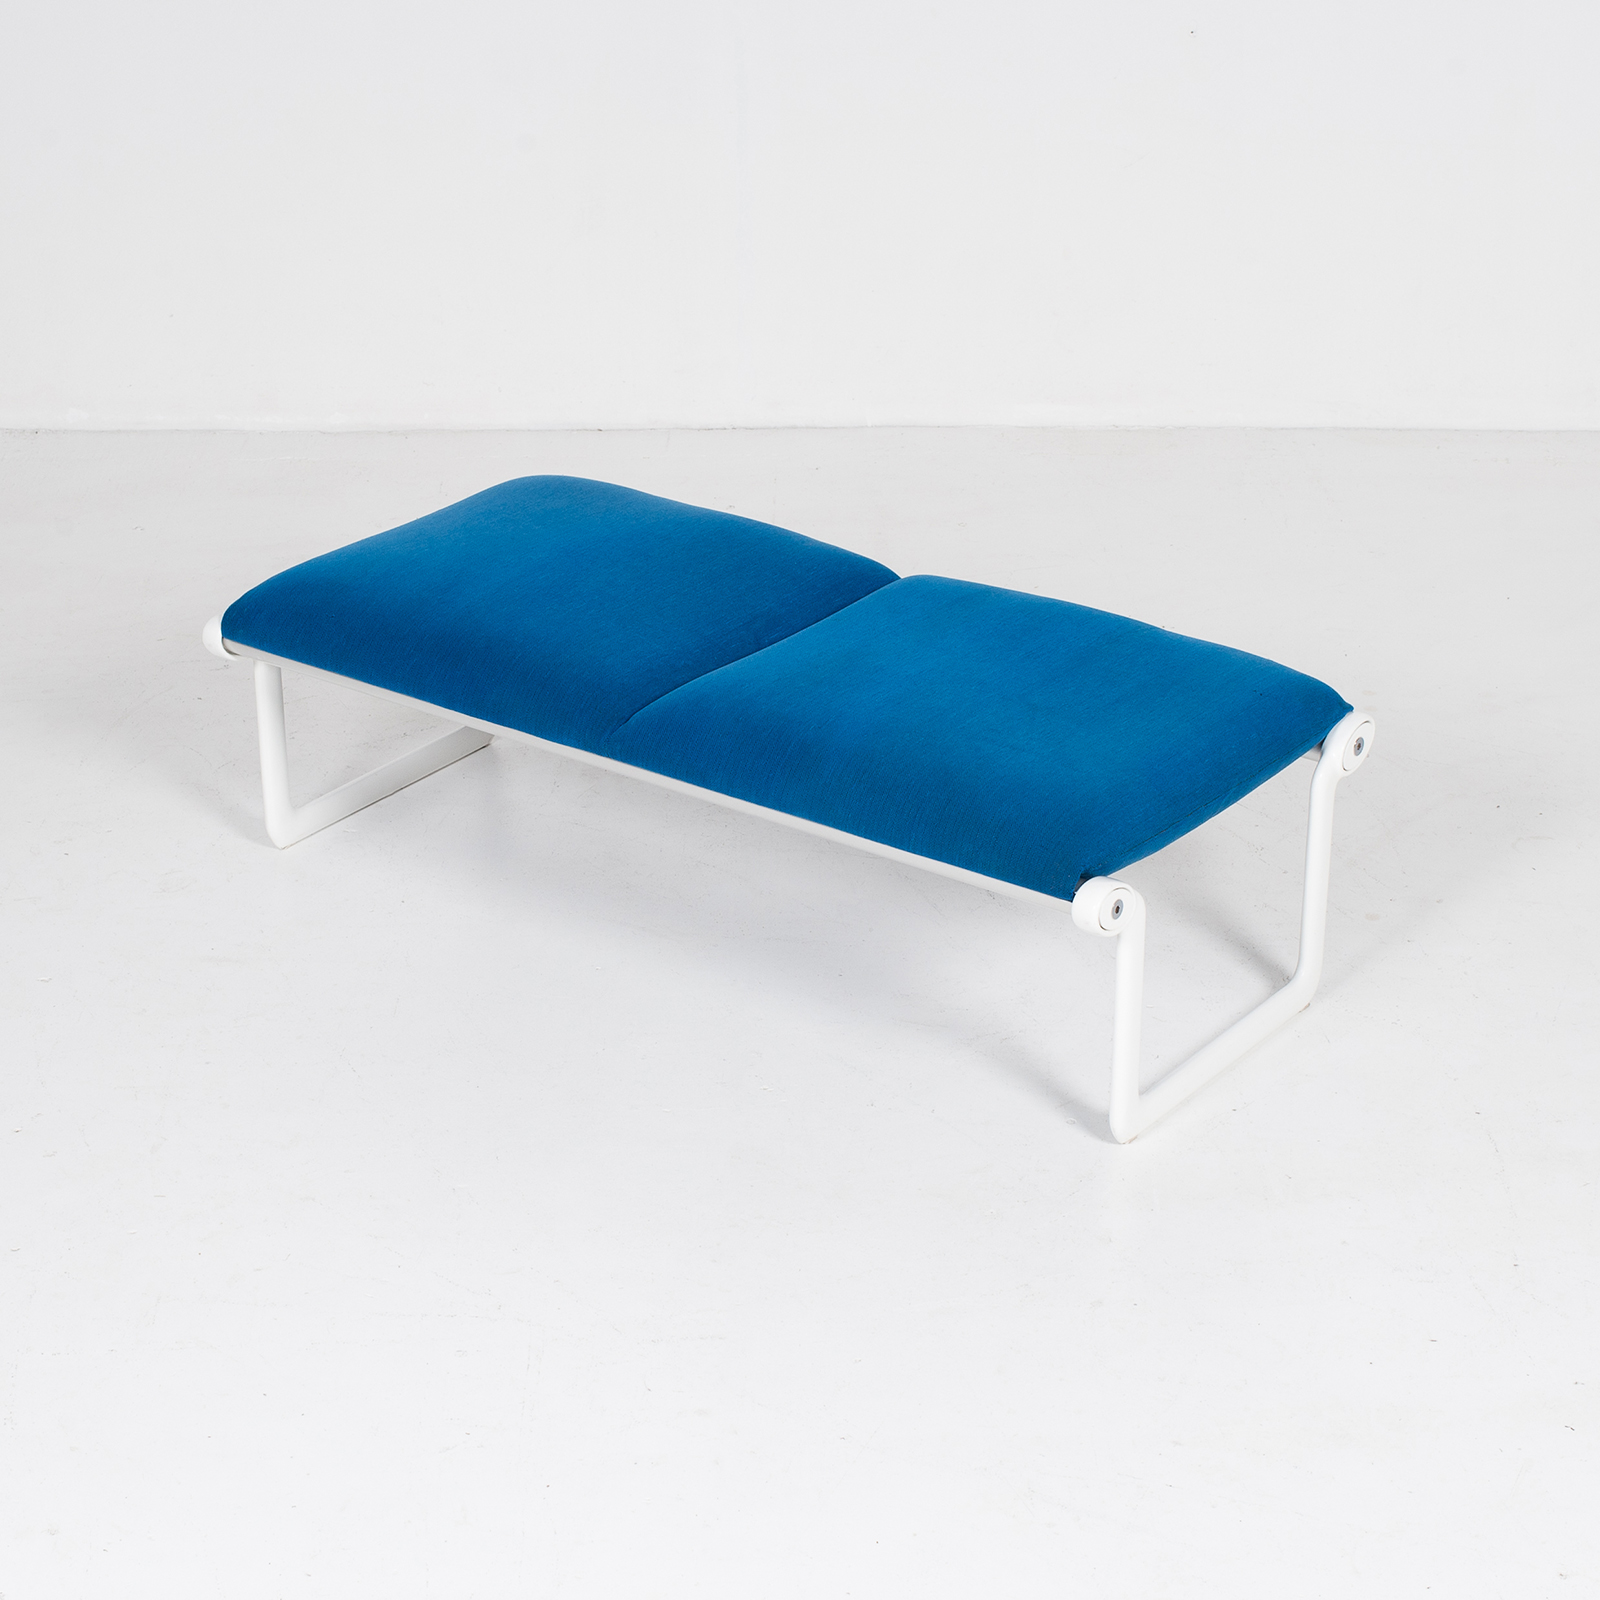 Bench By Bruce Hannah And Andrew Morrison For Knoll With Blue Upholstery, 1960s, United States 3